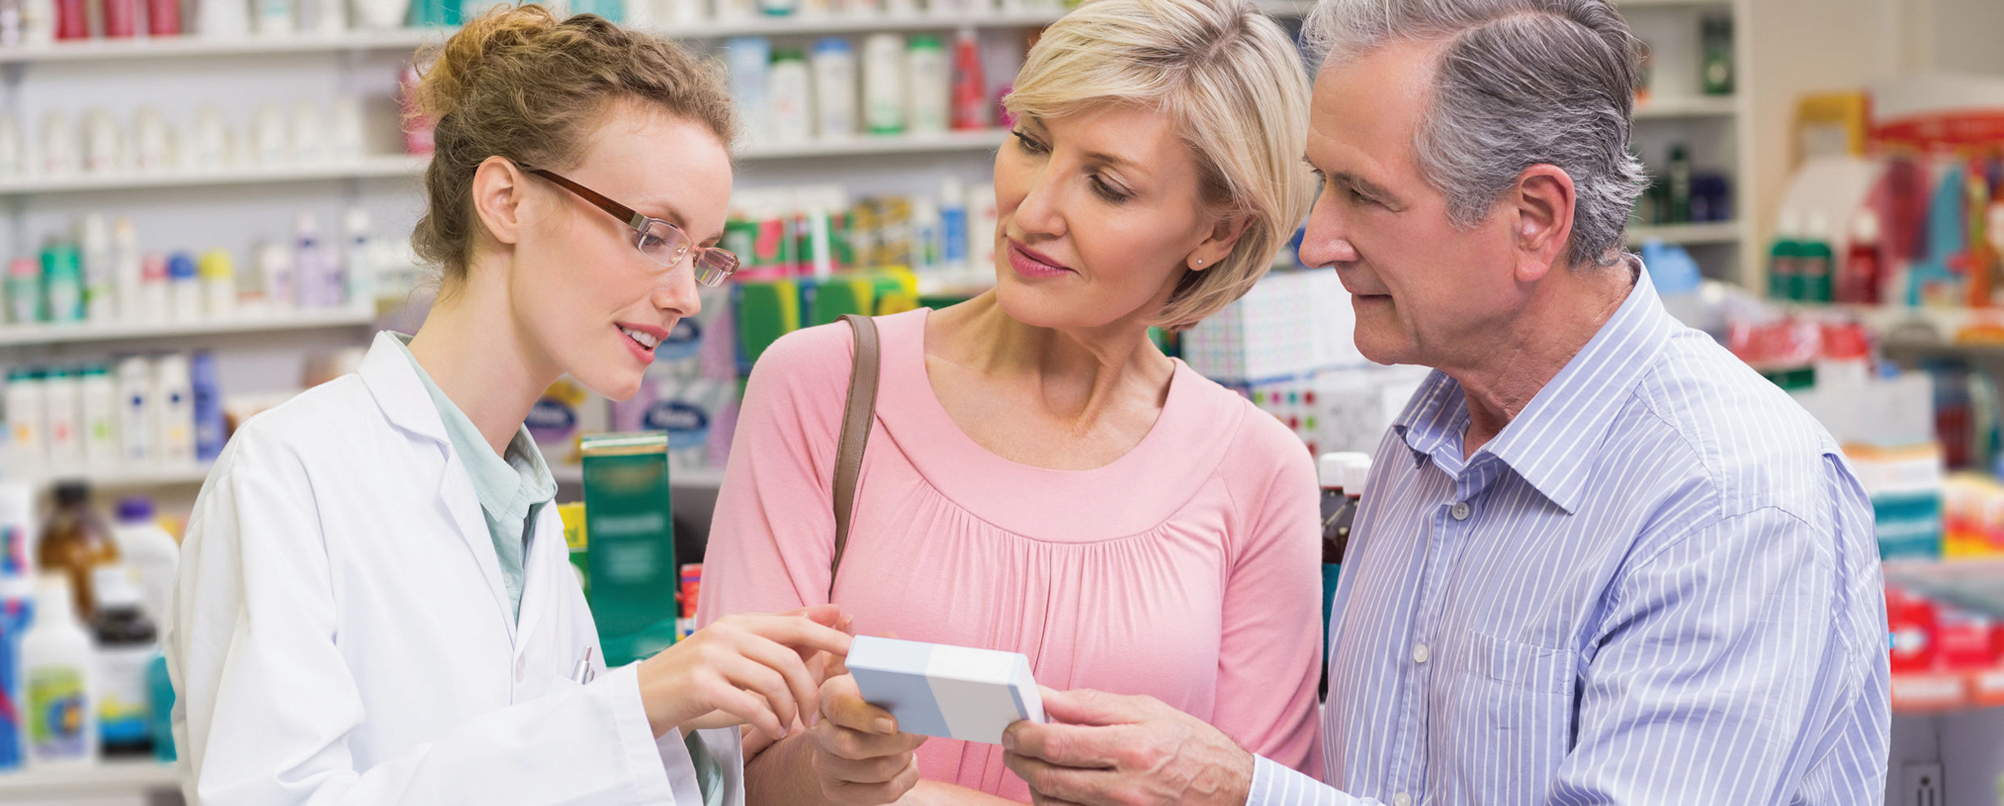 Senior couple speaks to pharmacist about medication package in pharmacy